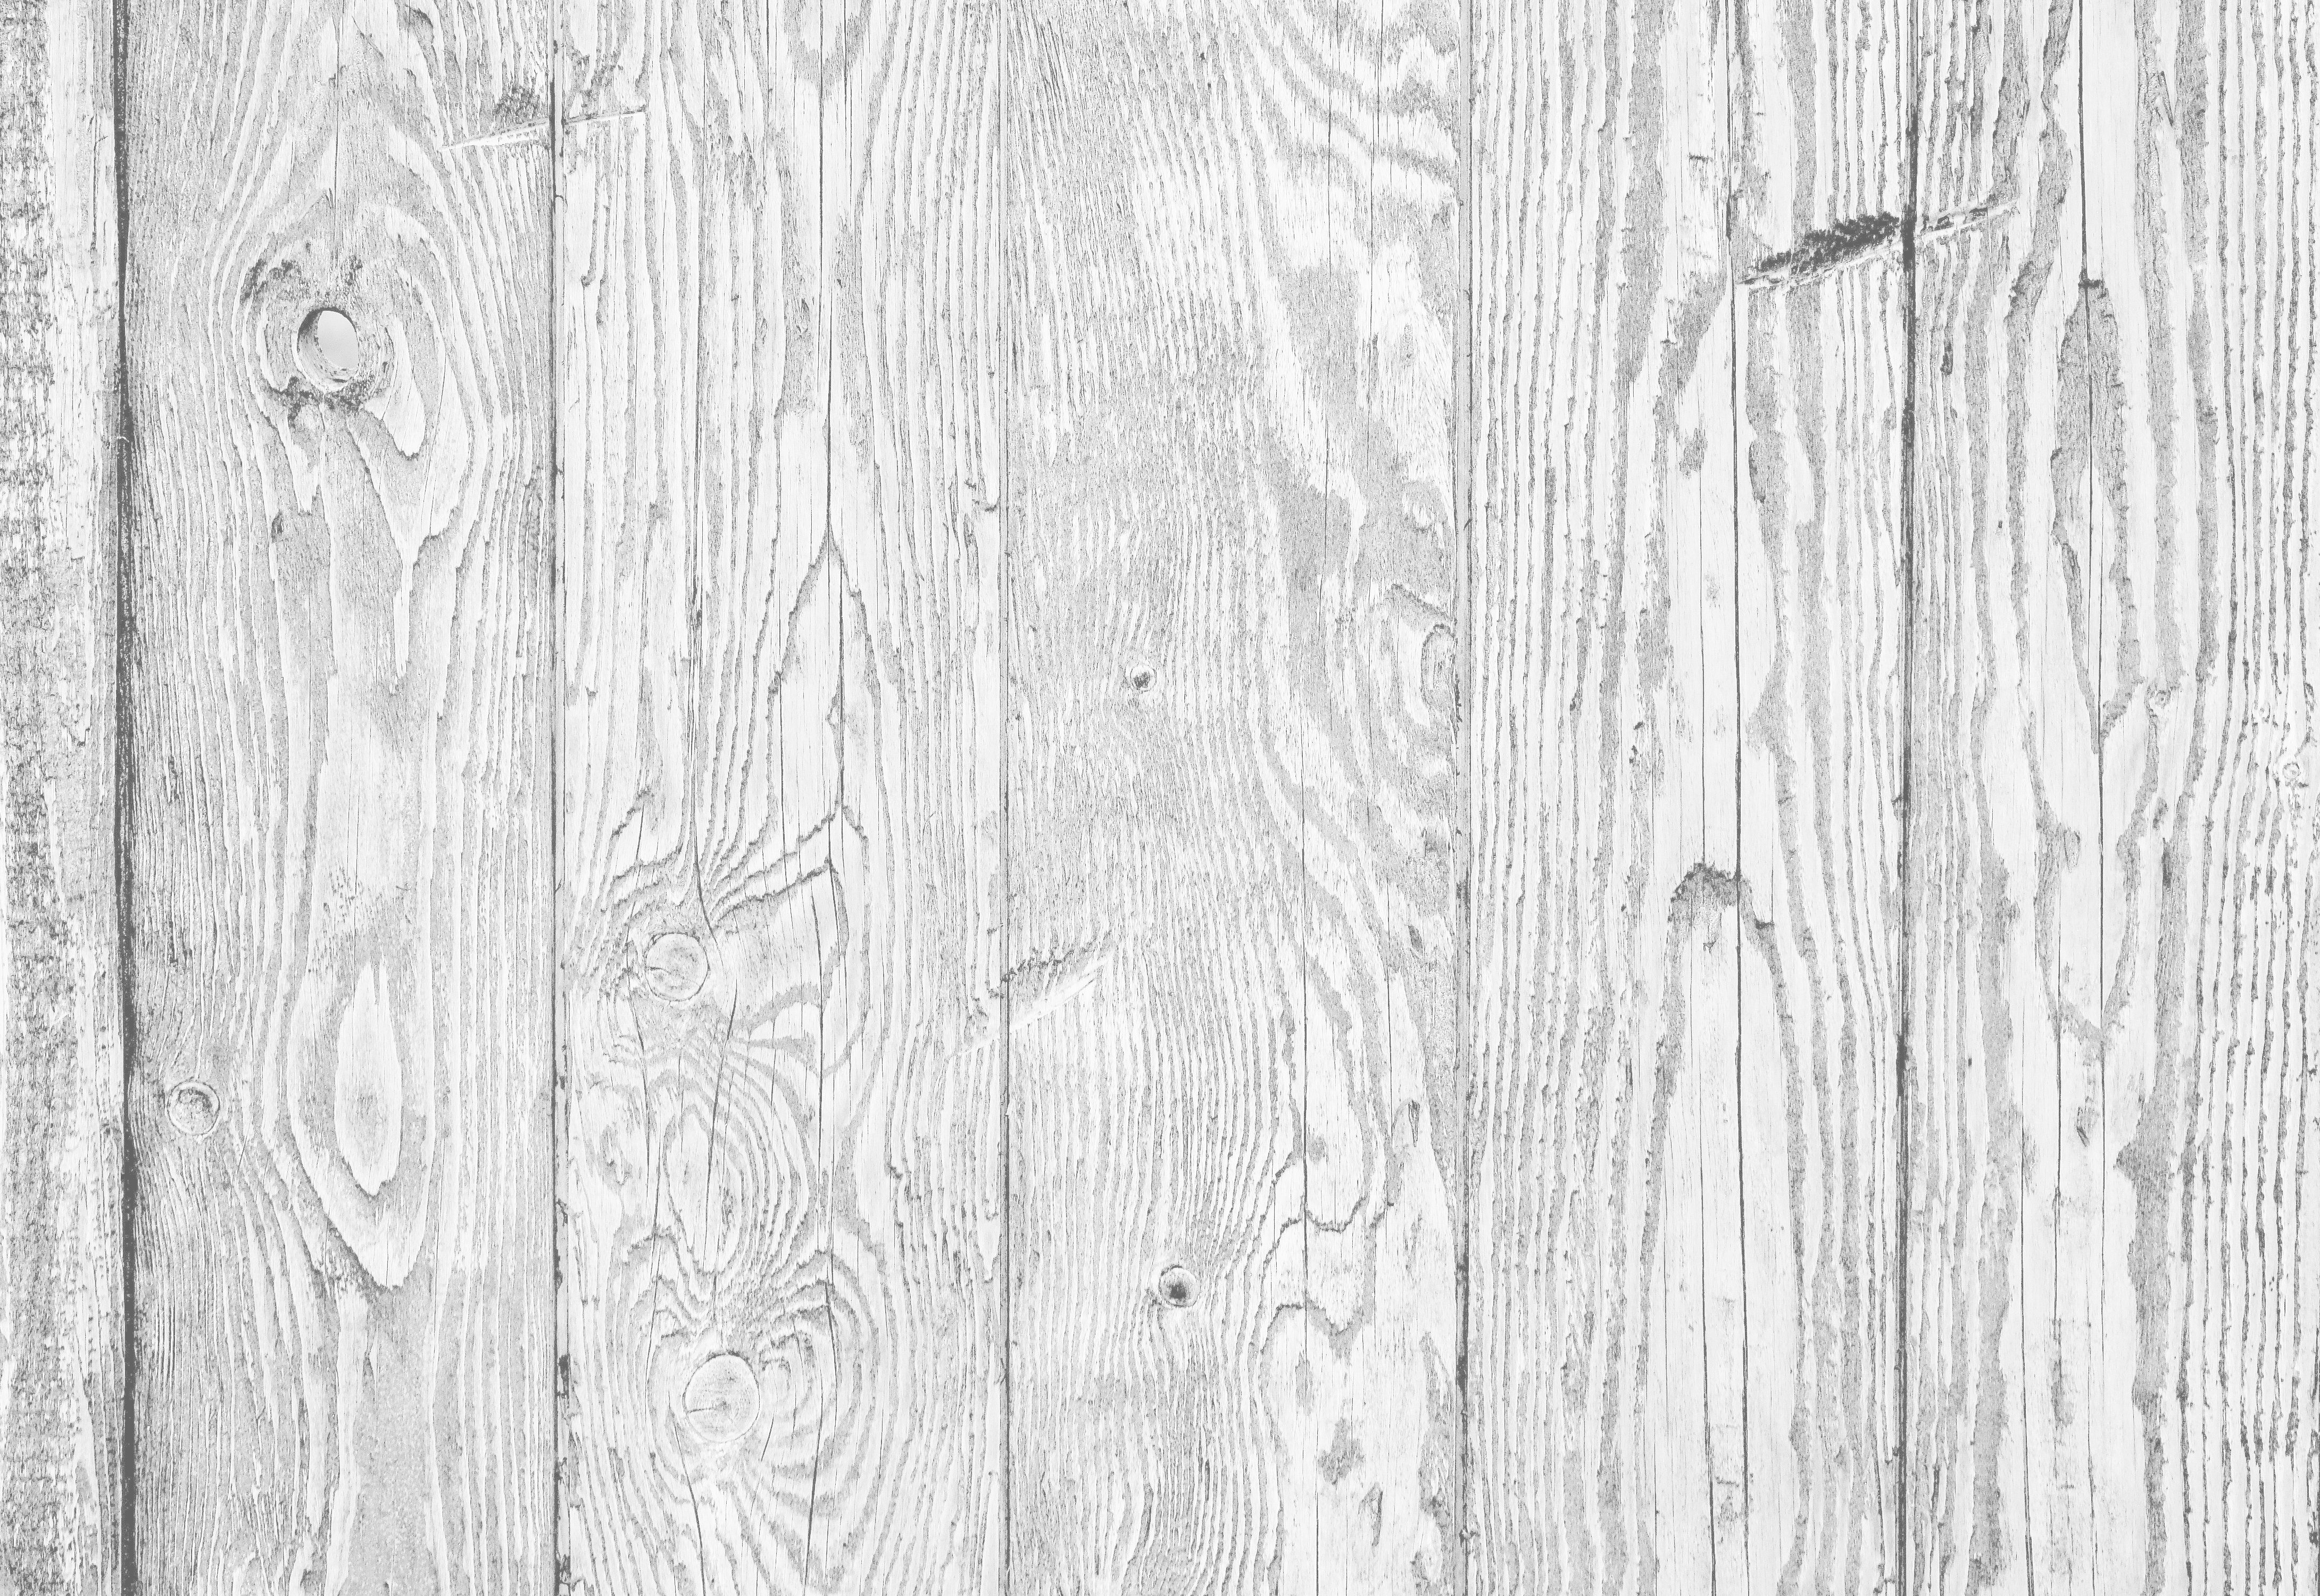 White wood texture background of distressed pine wood with knots. Natural white wooden texture wallp